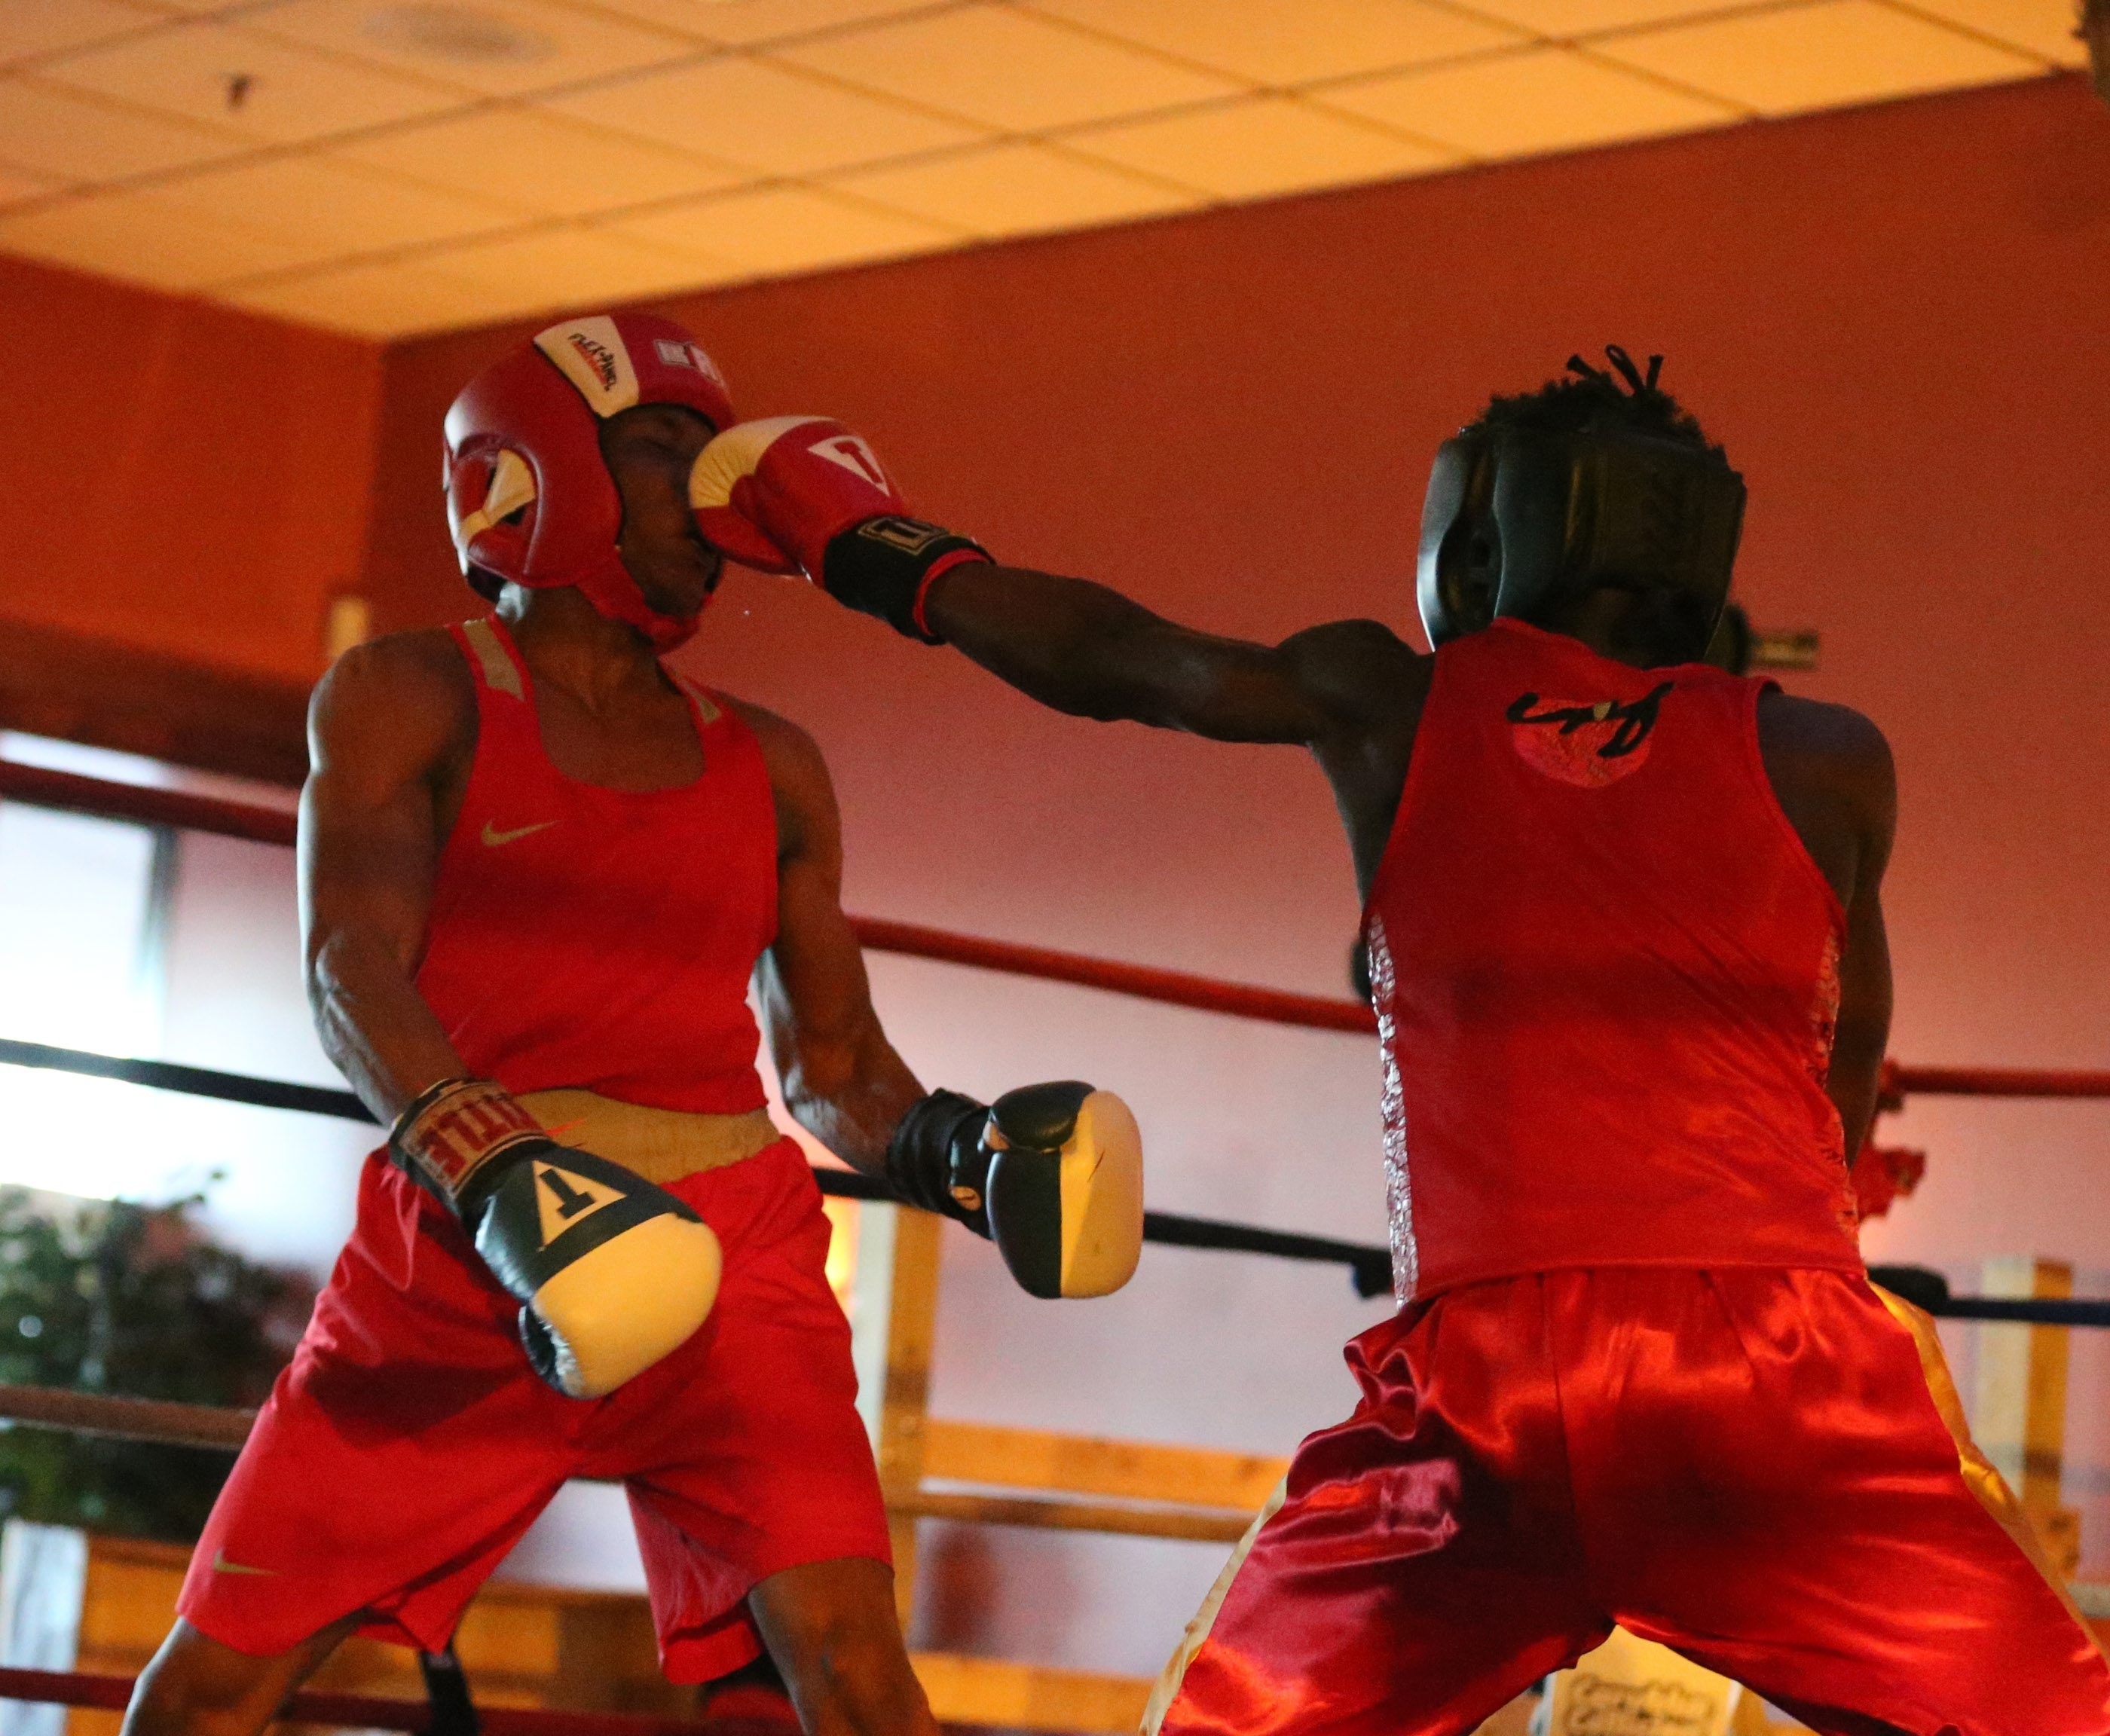 James P. McCoy/Buffalo NewsSequan Felton of St. Martin's Boxing in Rochester, right, absorbs a hard shot from Jeffery Ngyout of Buffalo's Westside Boxing Club in the 132-pound open bout at the New York State Golden Gloves championships.